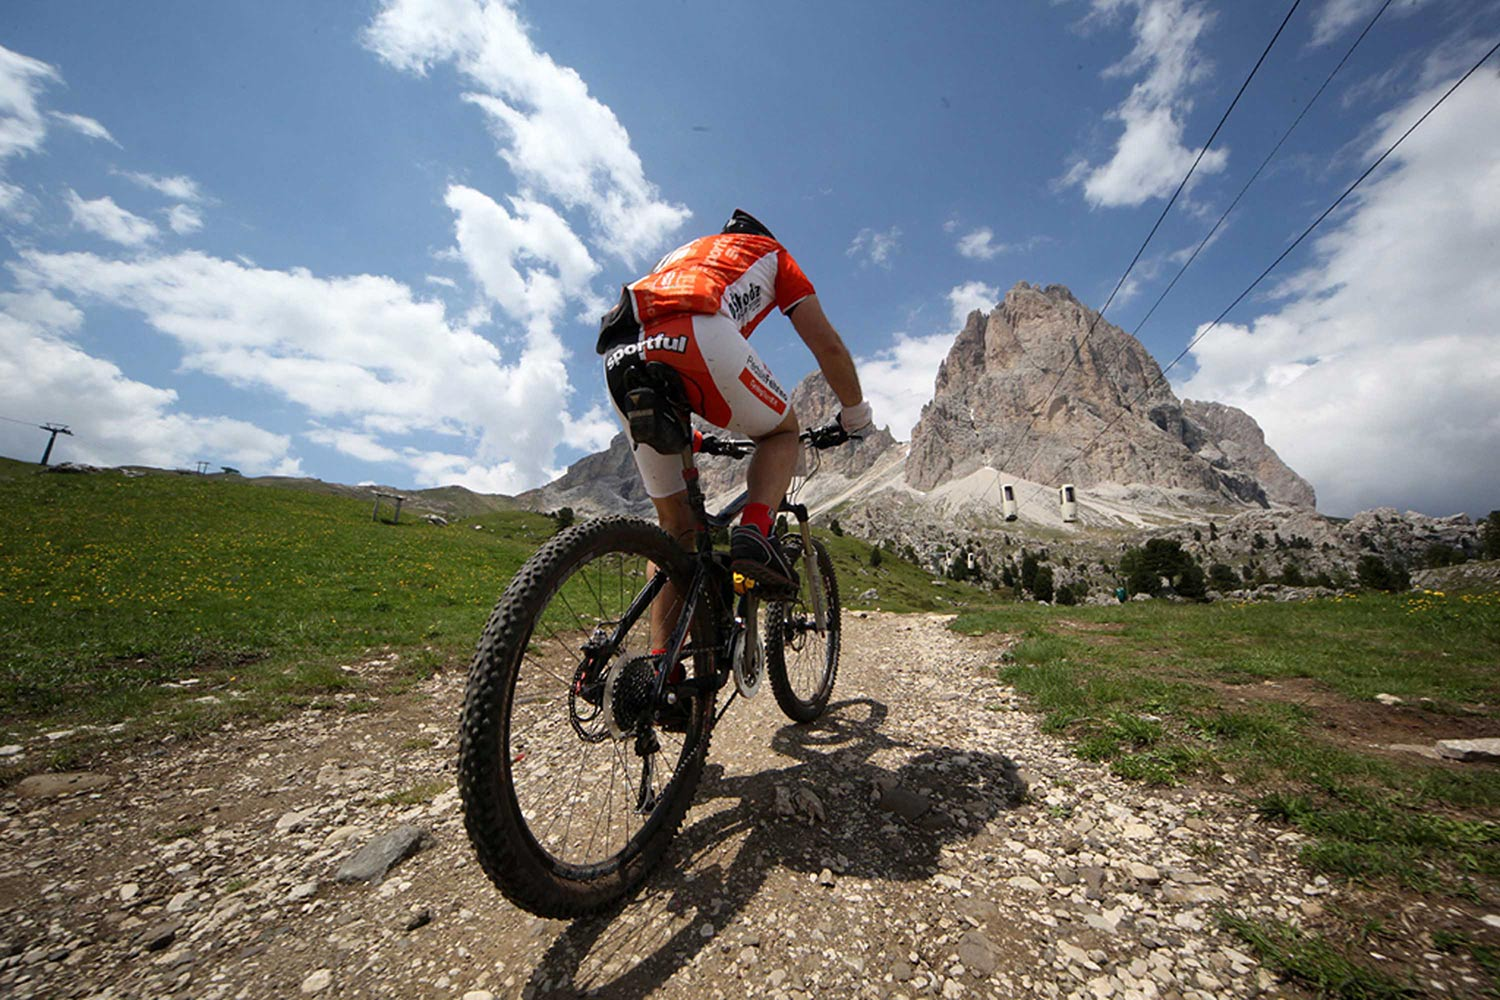 Percorsi in Mountain Bike nelle Marche